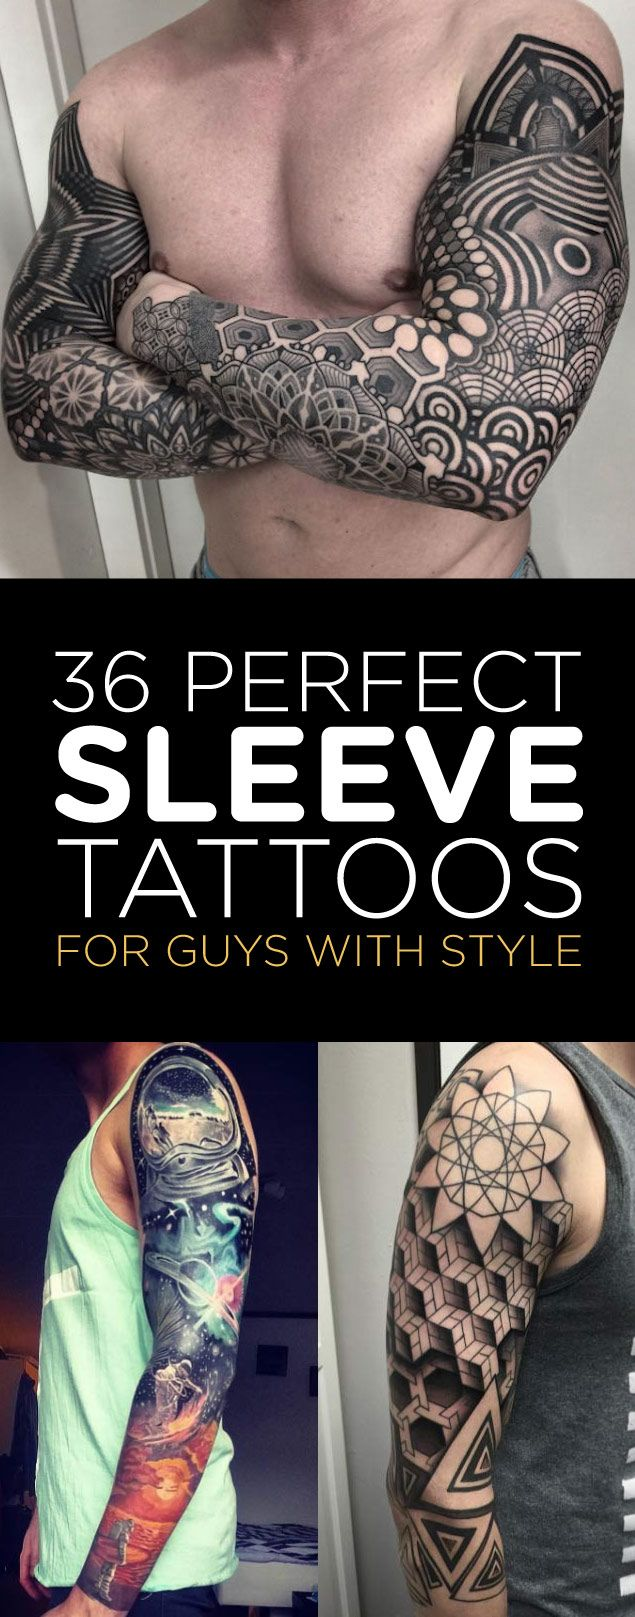 36 Perfect Sleeve Tattoos for Guys With Style